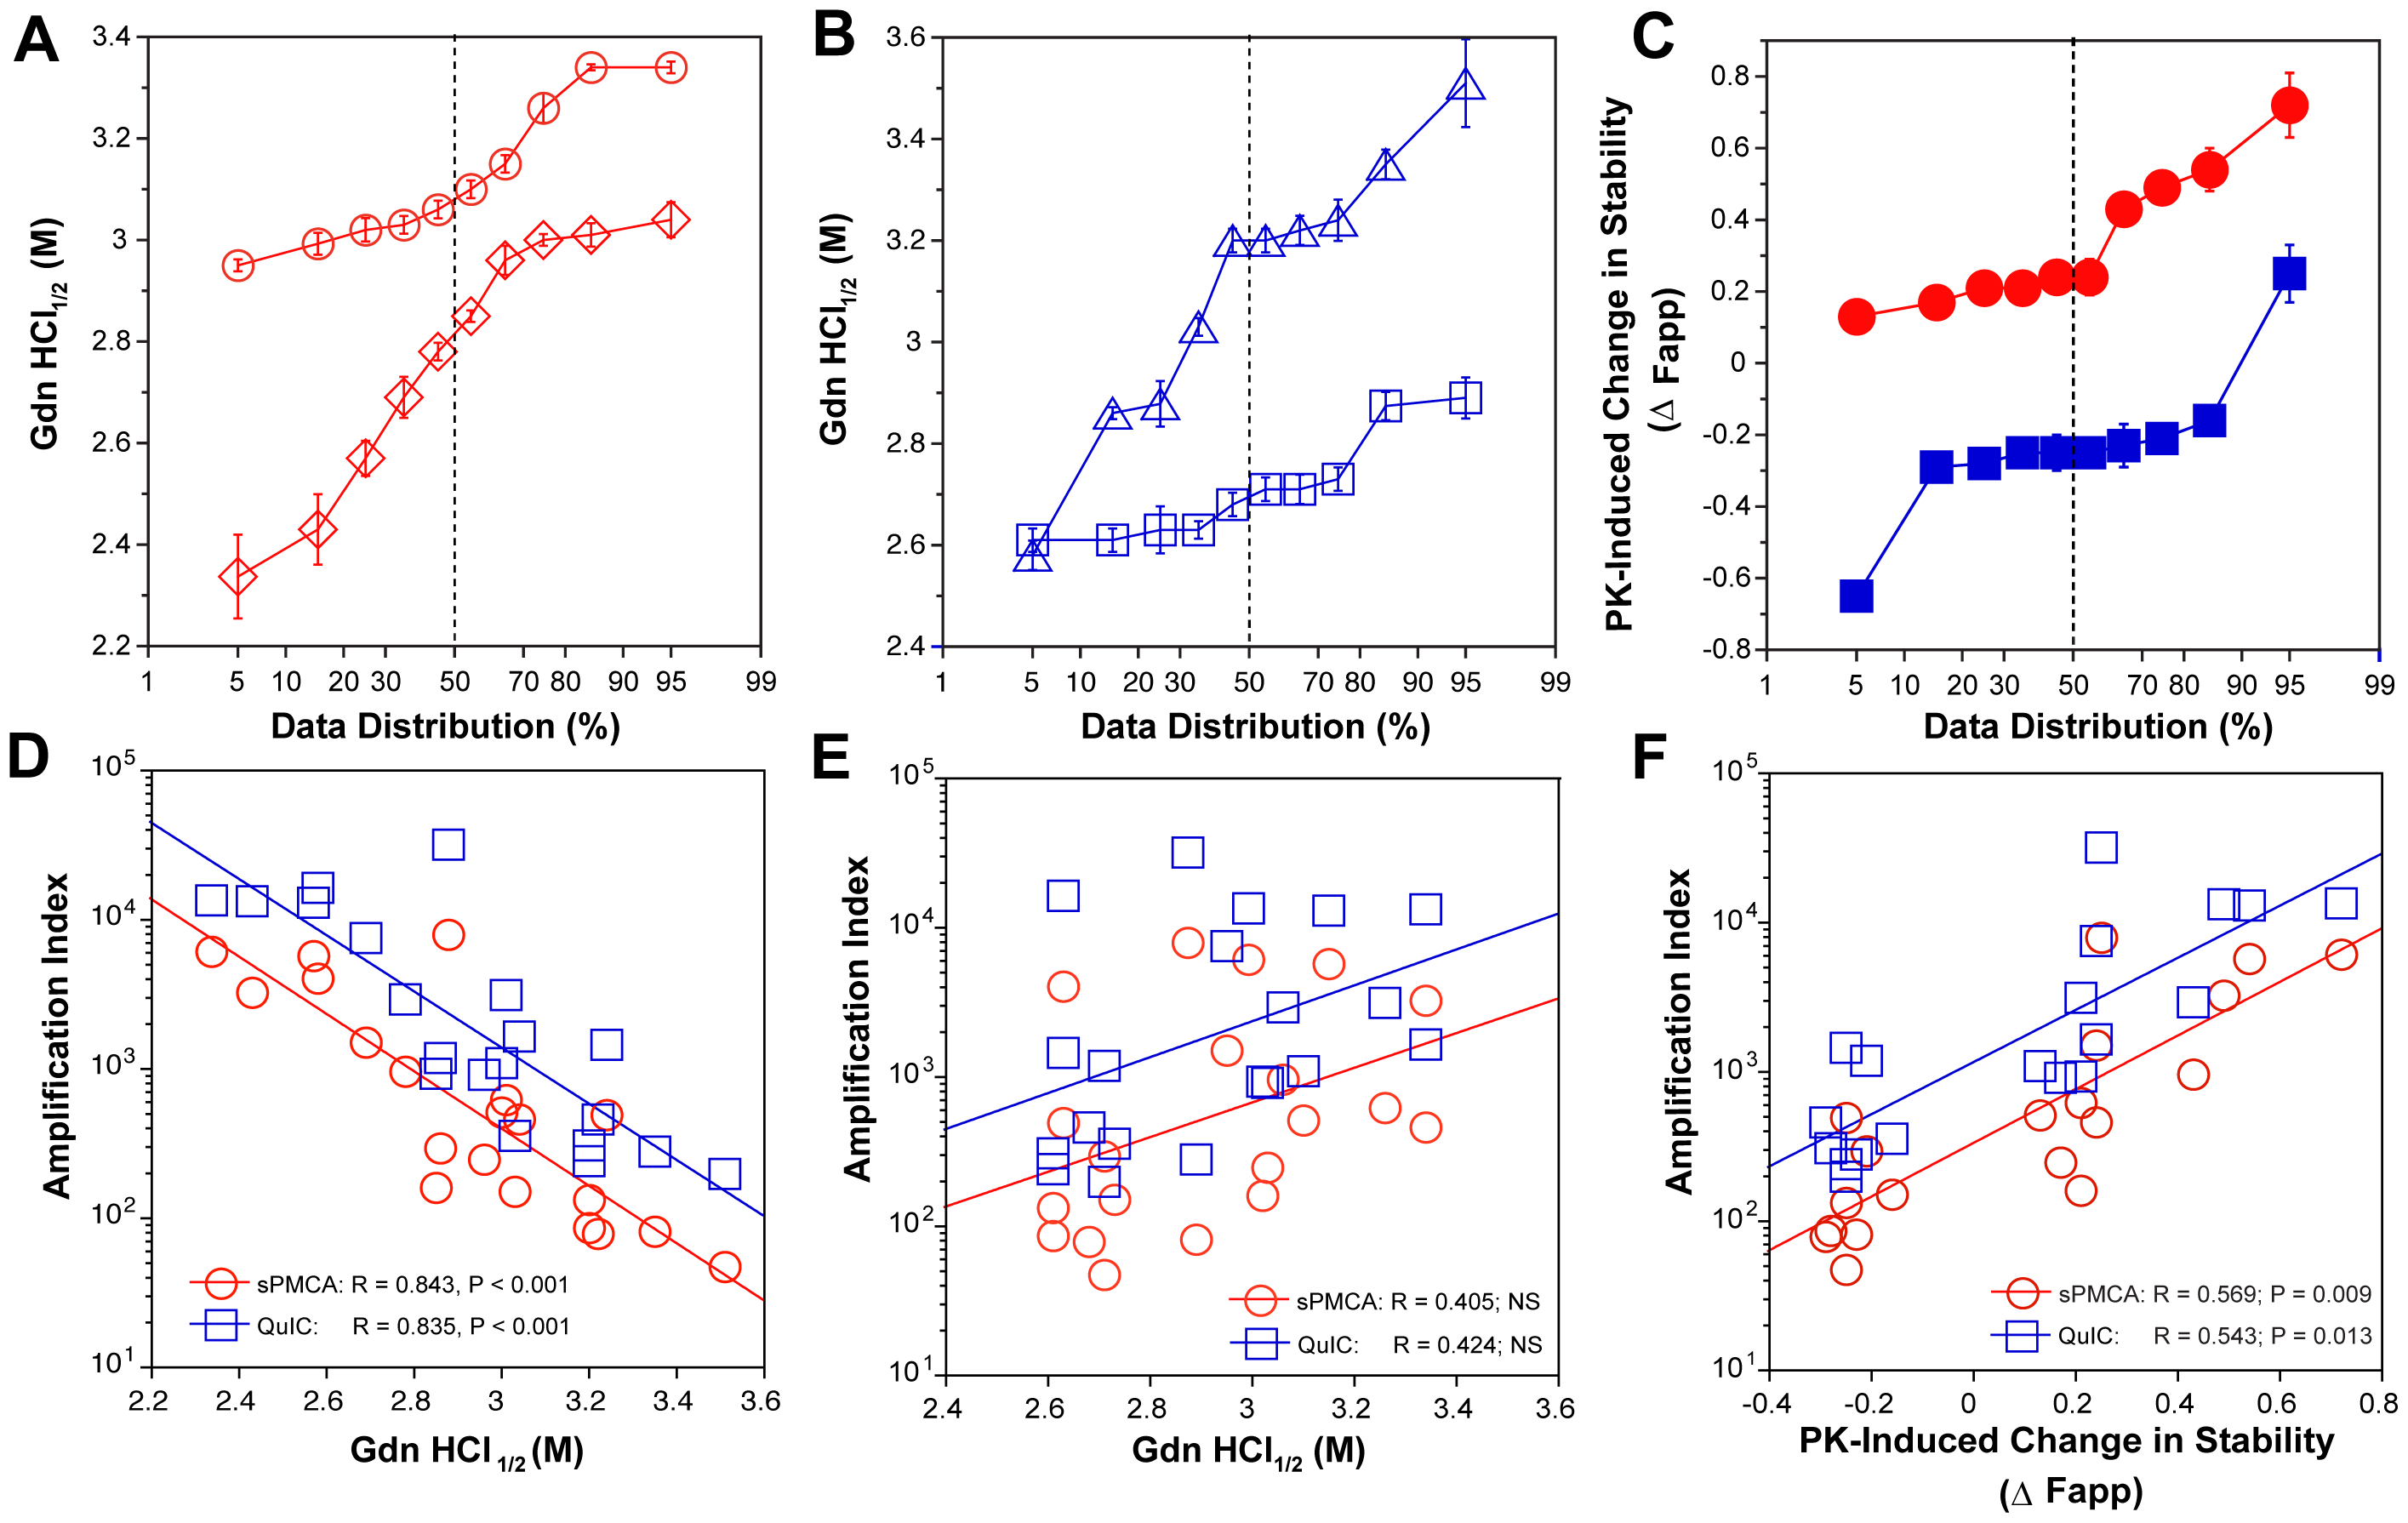 Relationship between conversion potency and the conformational stability of PrP<sup>Sc</sup>, rPrP<sup>Sc</sup>, and sPrP<sup>Sc</sup> in MM1 (n=10) and MM2 (n=10) sCJD cases.